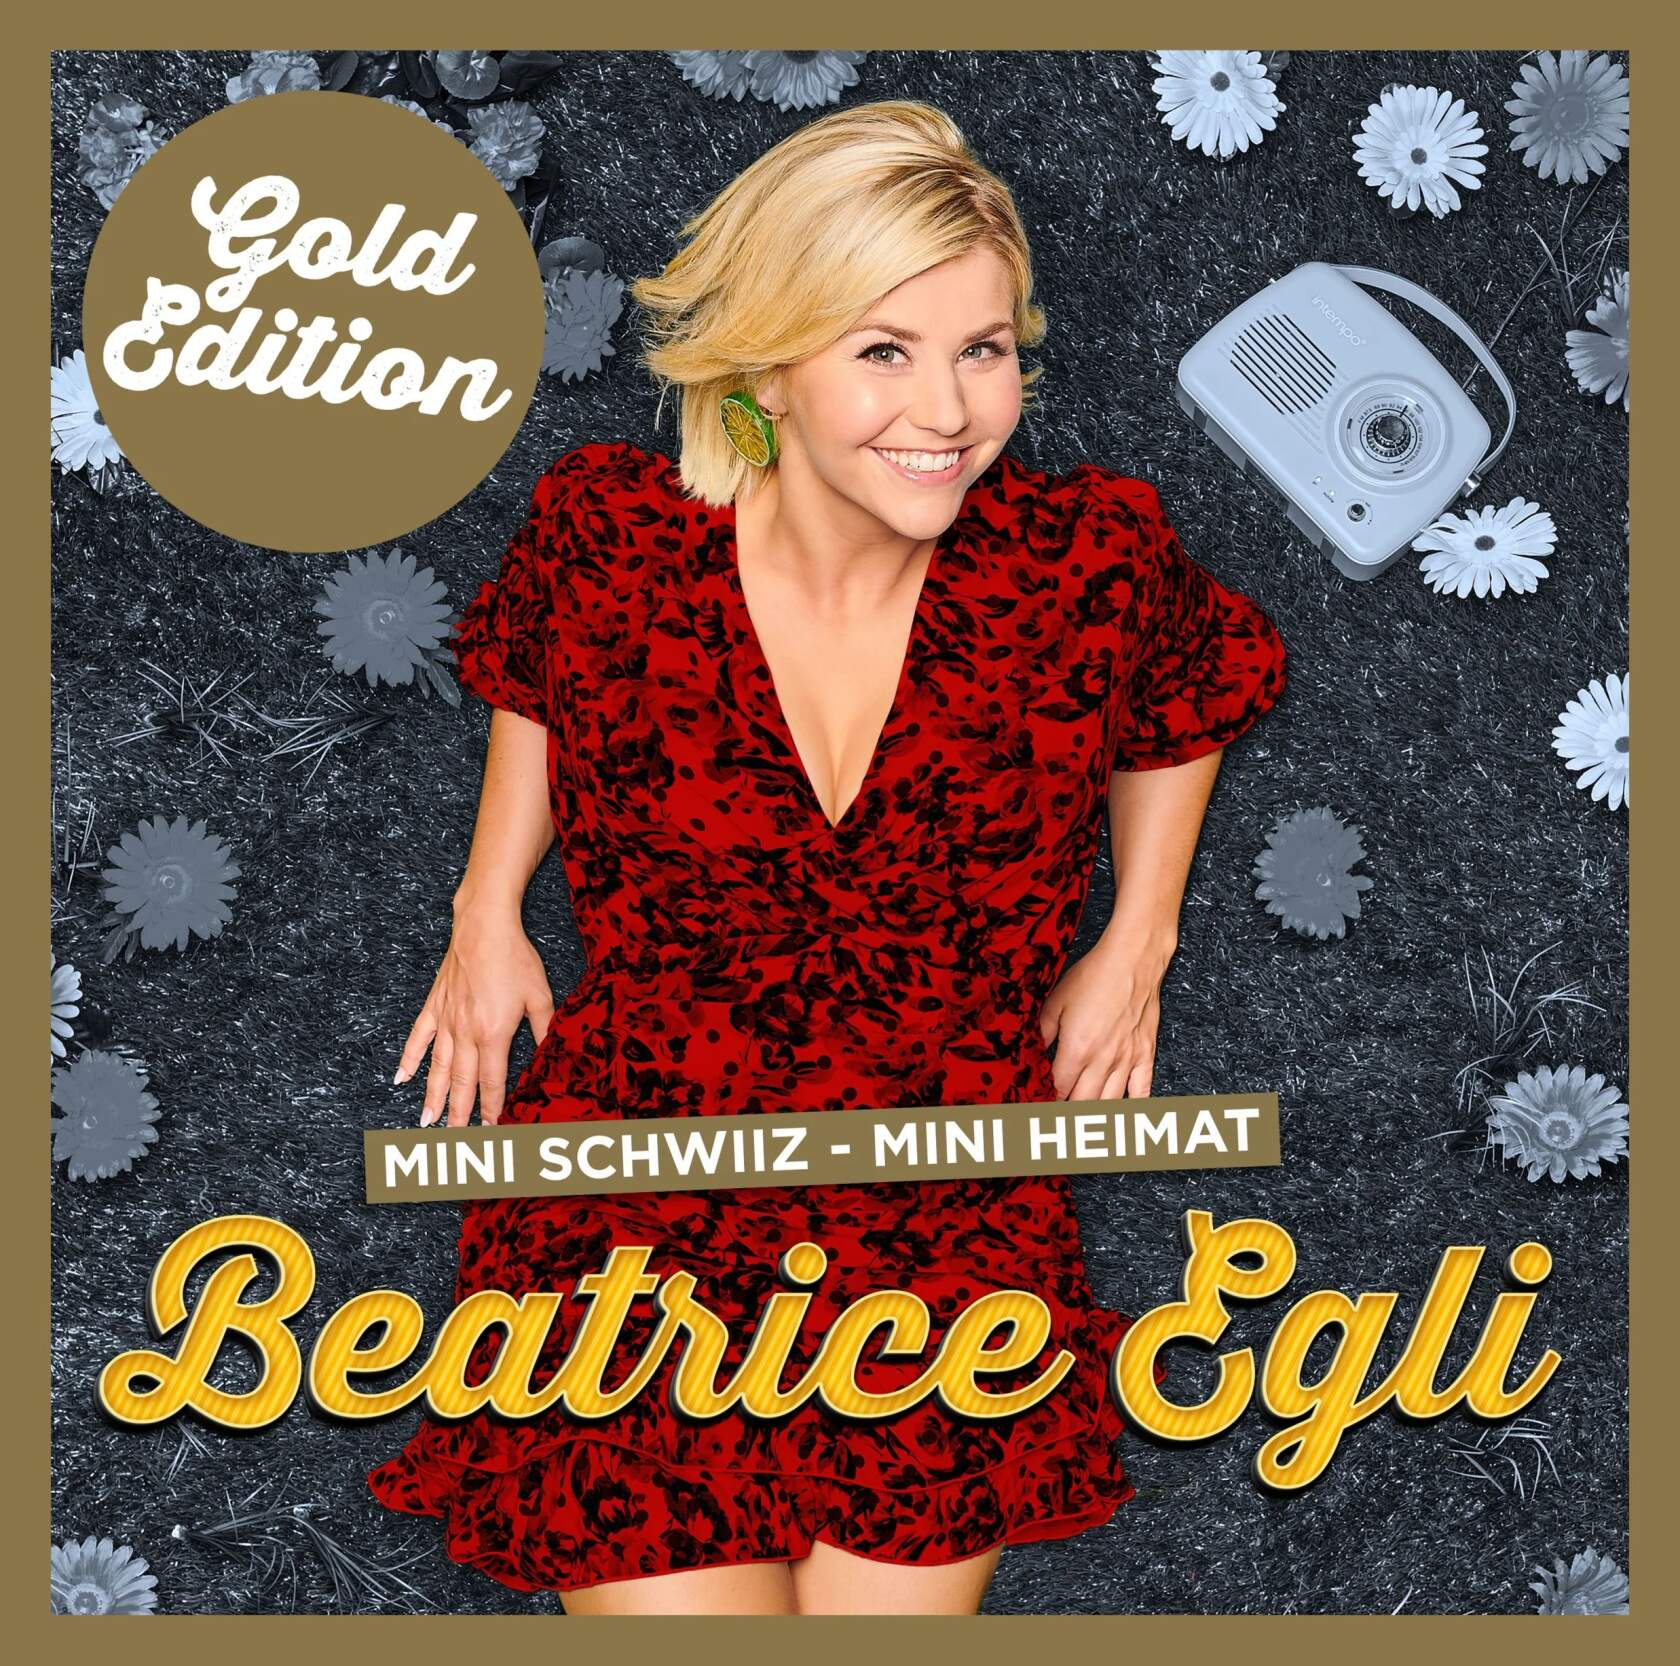 Beatrice Egli - Mini Schwiiz - mini Heimat (Gold Edition) (2021)